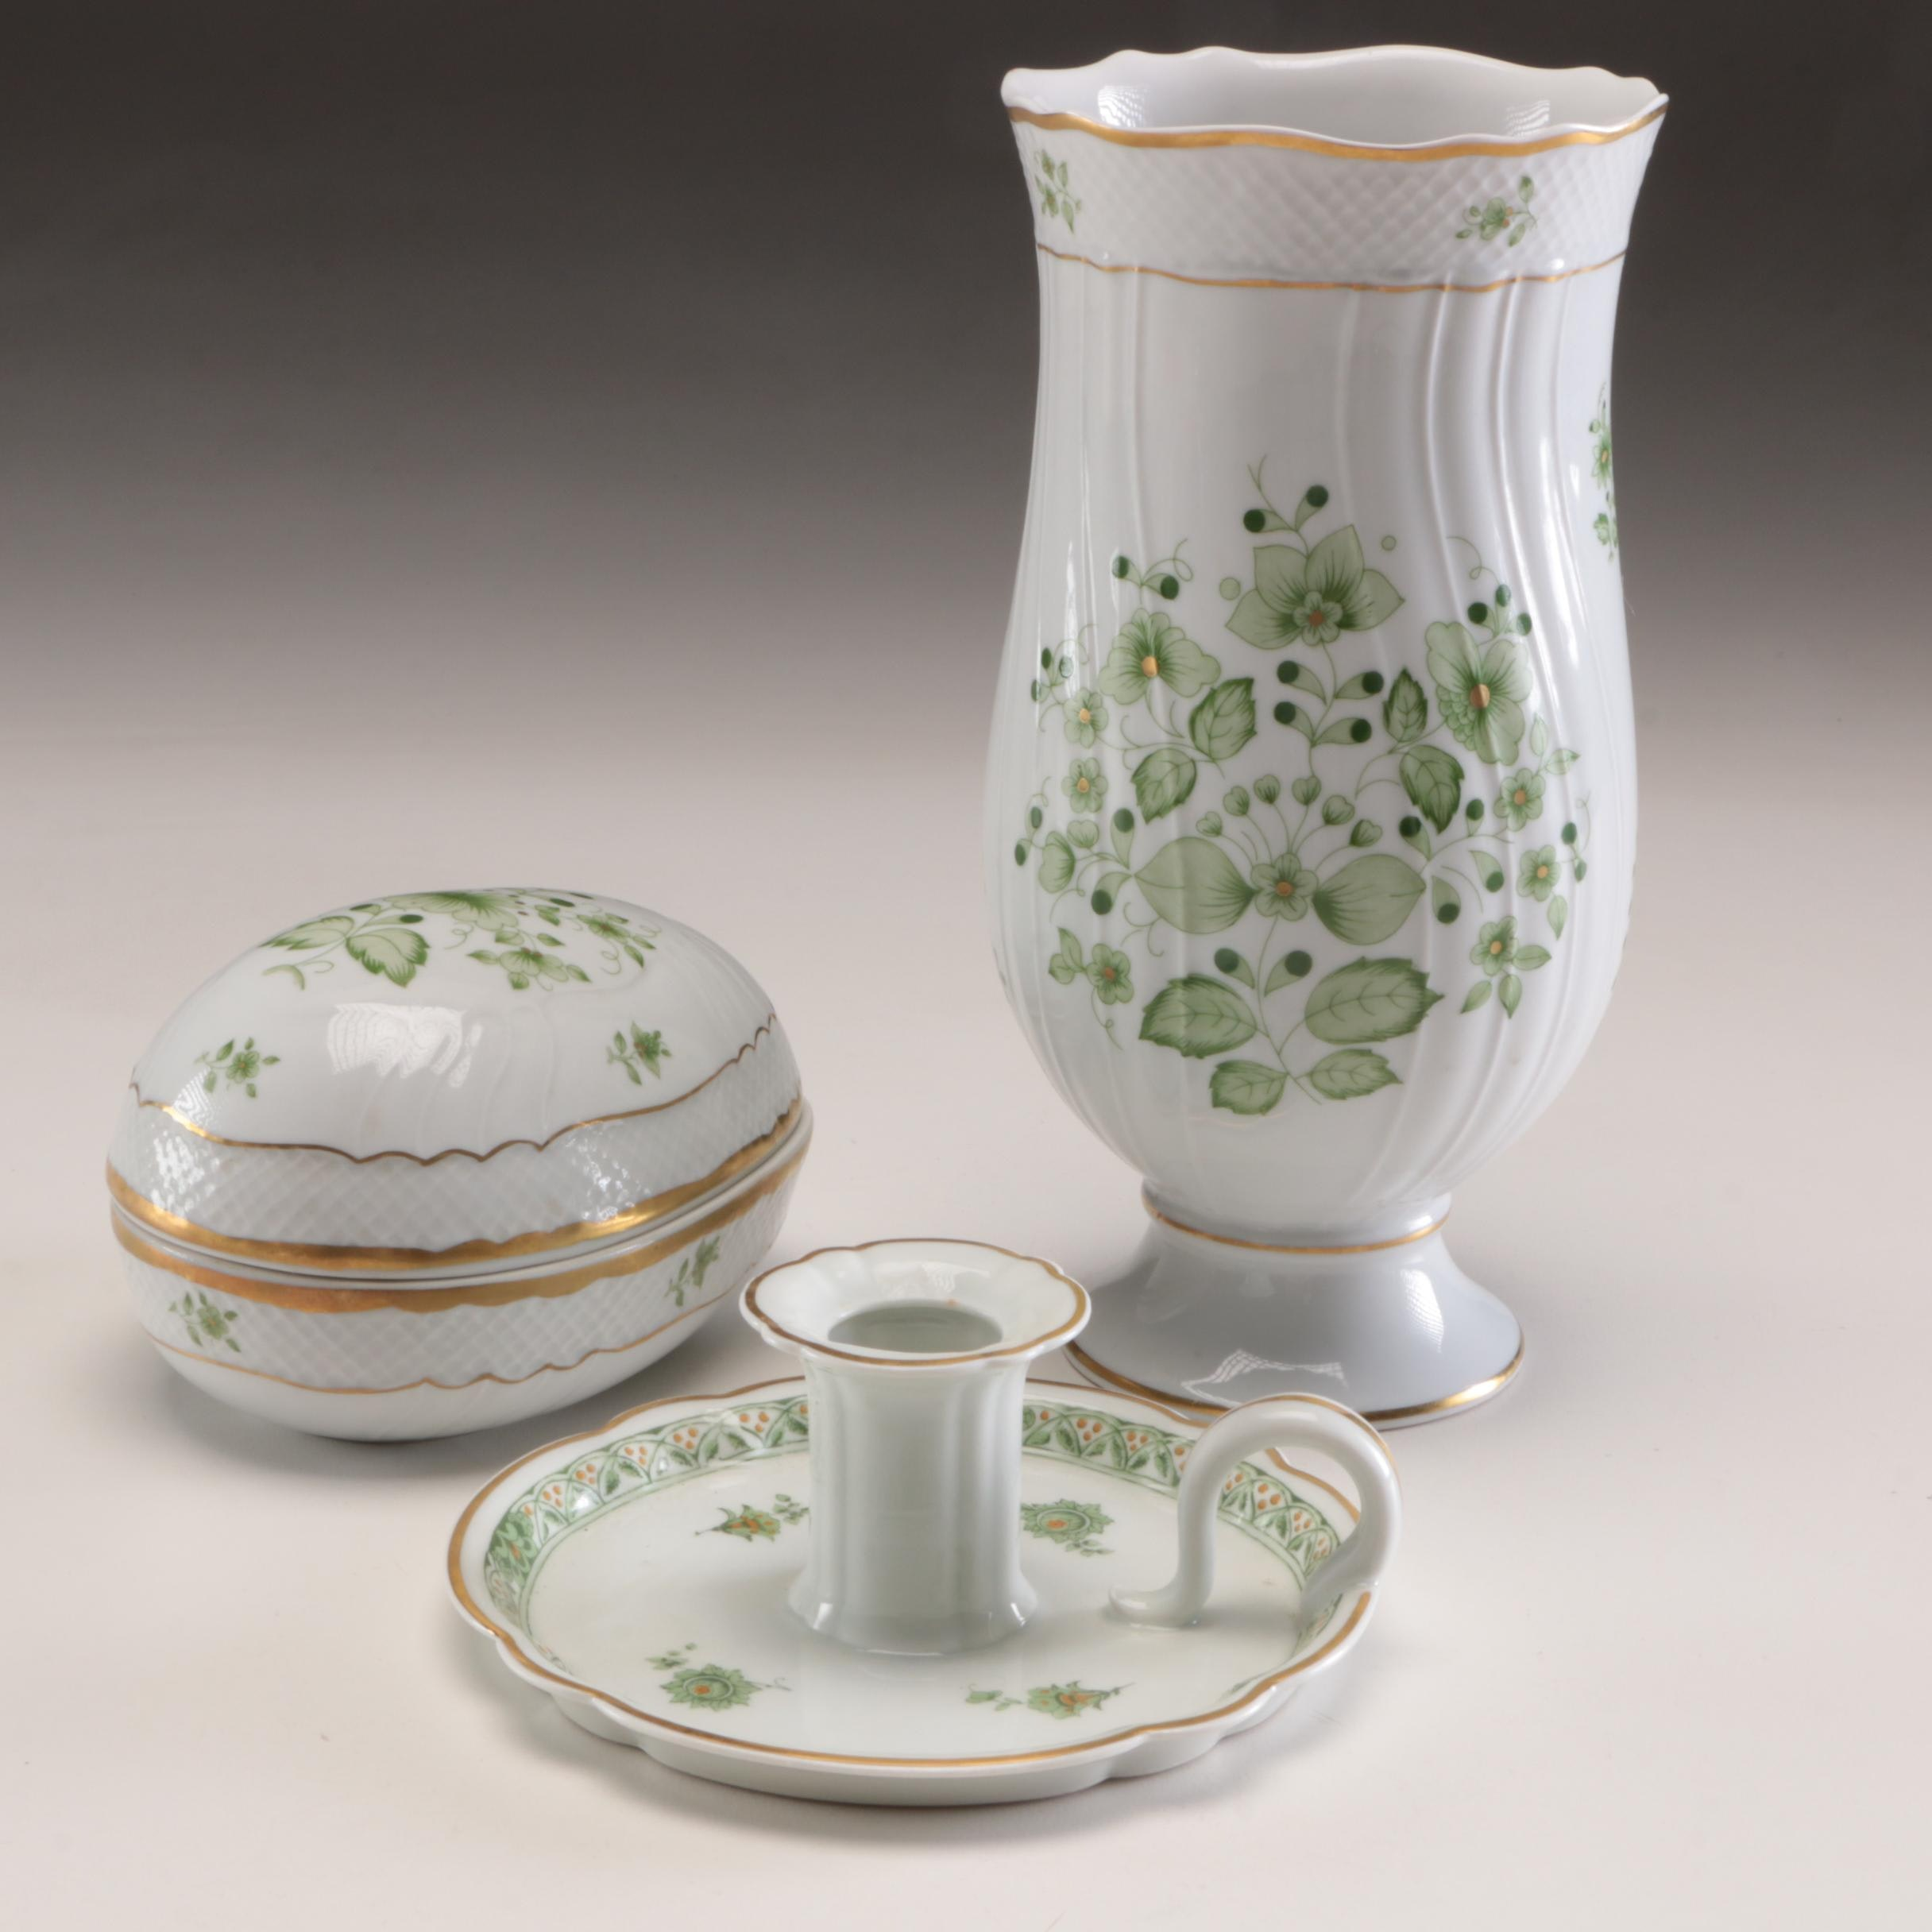 Hollóháza Porcelain Vase and Egg Box with Haviland Candle Chamberstick